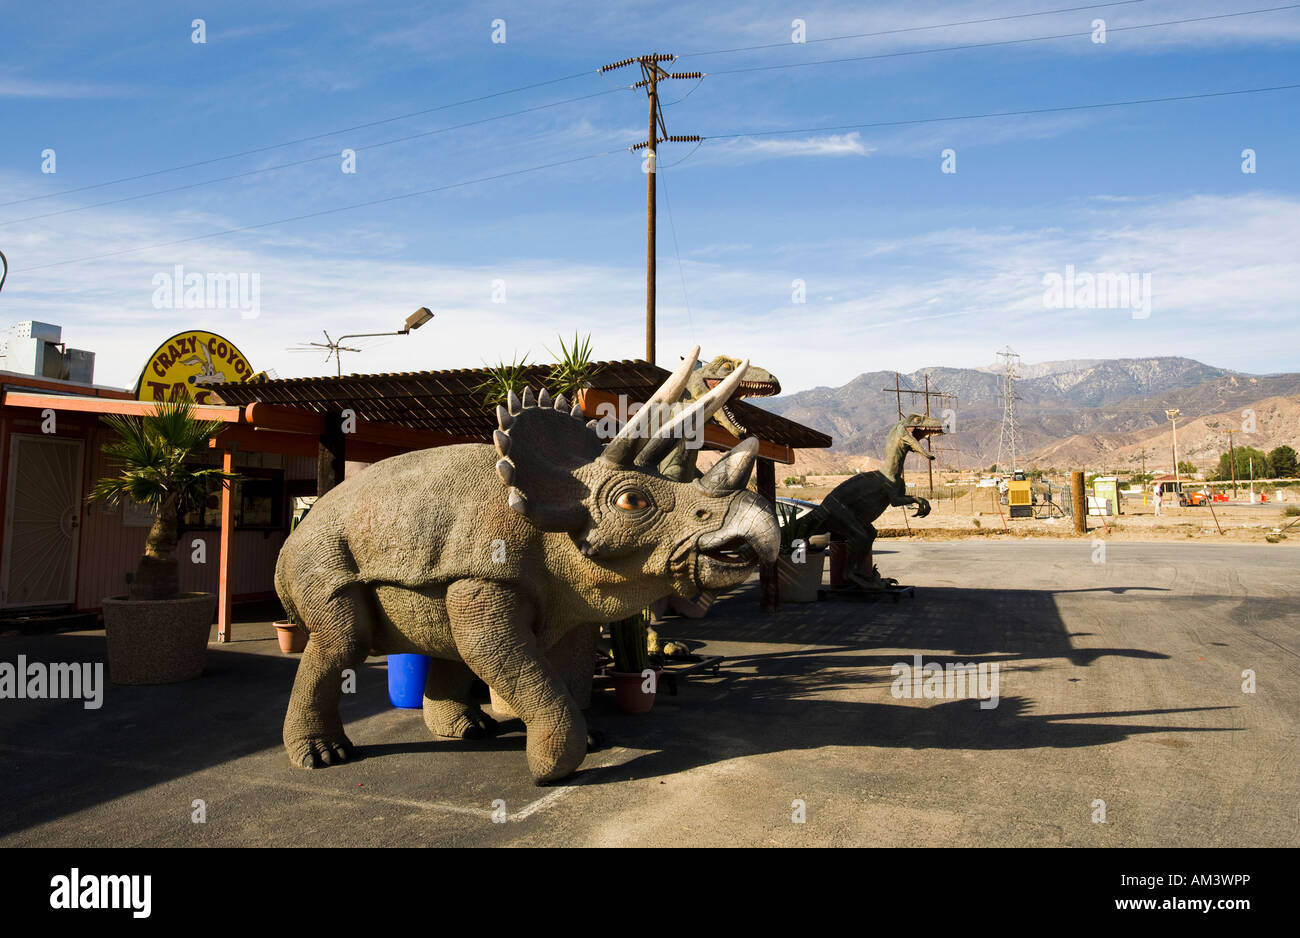 Crazy Coyote Taco stand Cabazon California United States of America - Stock Image